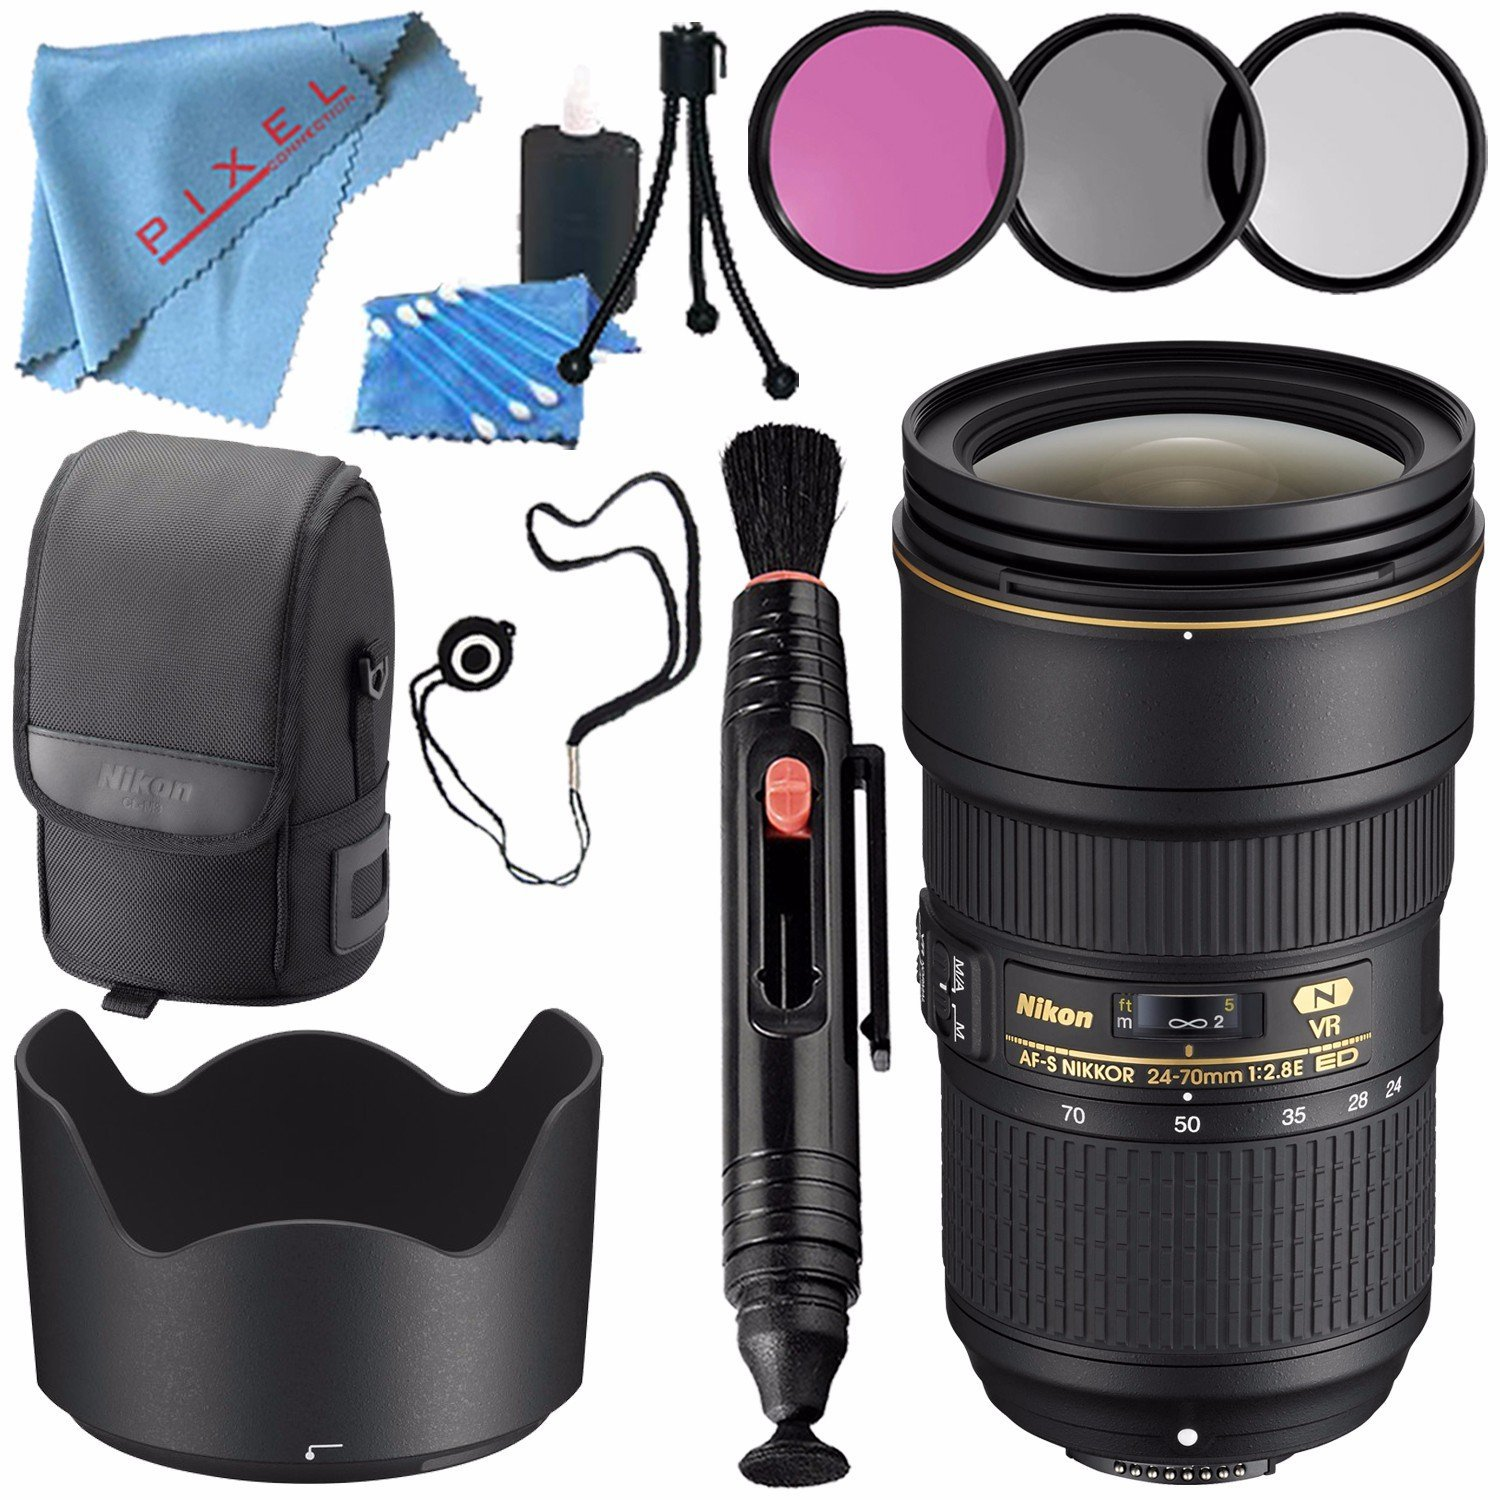 Nikon AF-S NIKKOR 24-70mm f/2.8E ED VR Lens 20052 + 82mm 3 Piece Filter Kit + Lens Pen Cleaner + Fibercloth + Lens Capkeeper + Lens Cleaning Kit Bundle